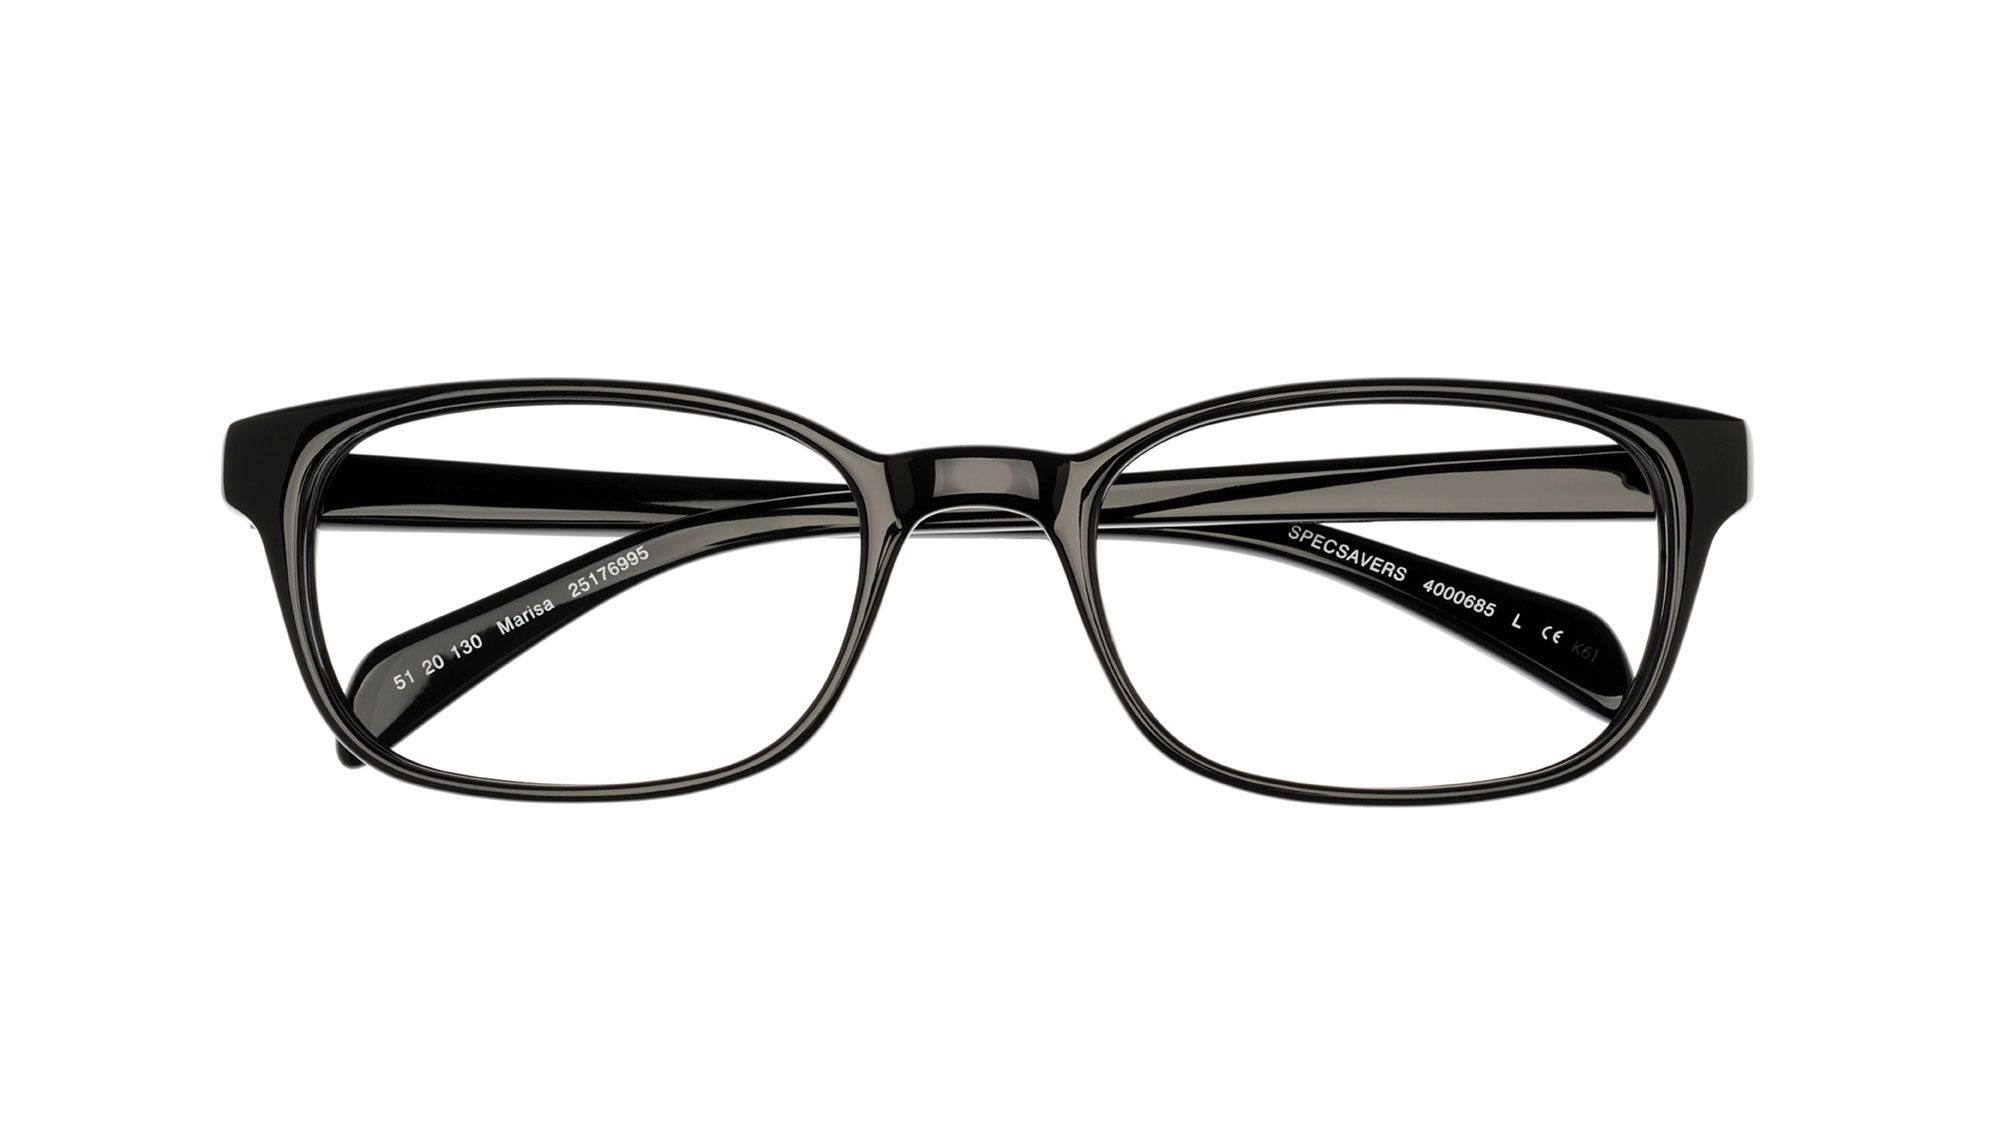 d17677b467f0 MARISA Glasses by Specsavers